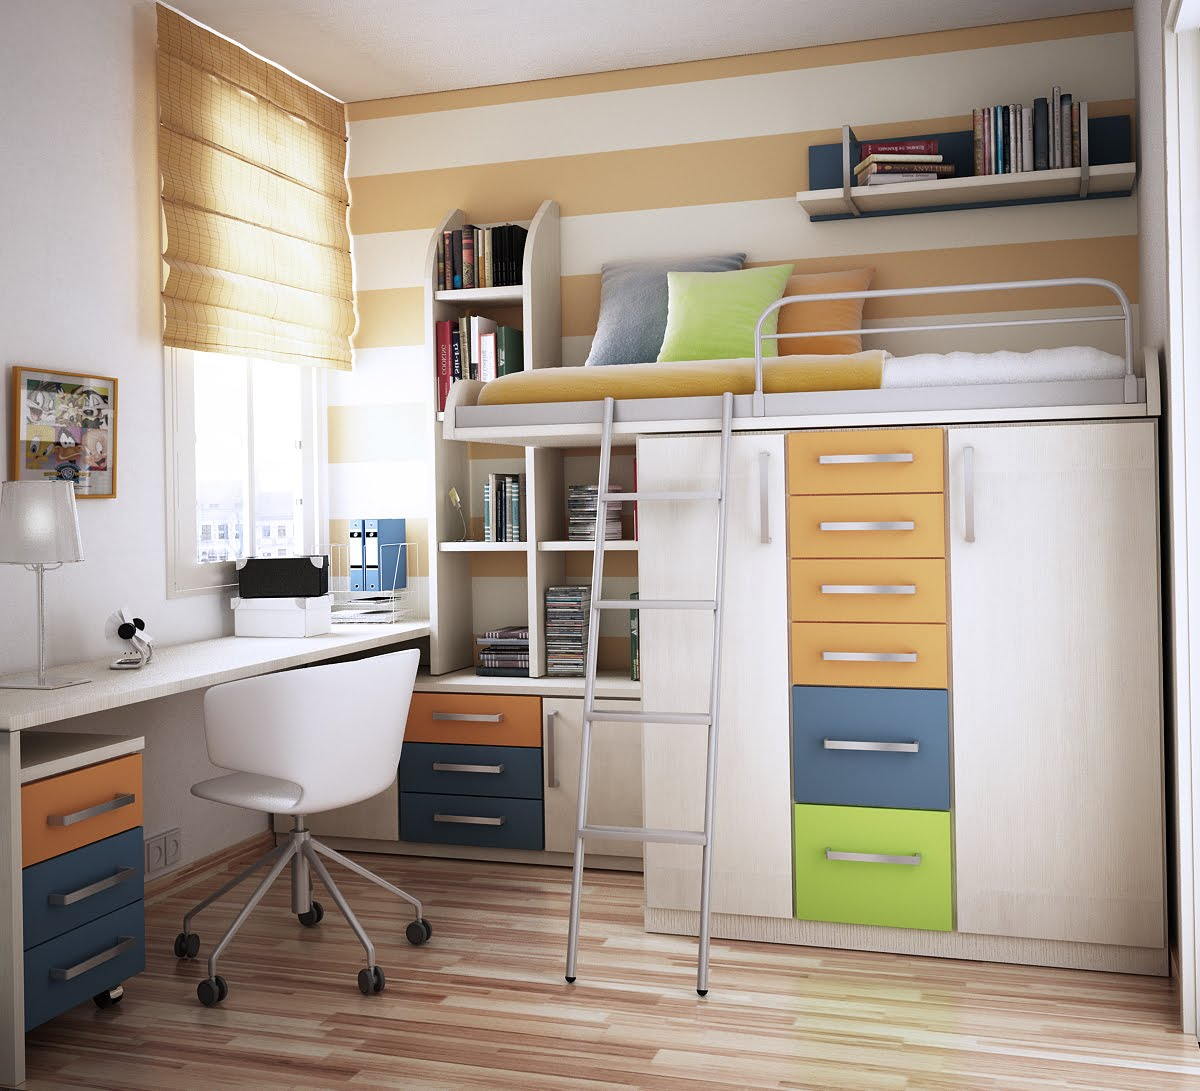 http://3.bp.blogspot.com/-hYgFWfCo3pY/T7NyIc2UkGI/AAAAAAAAOy0/THFnForsfQc/s1600/Small-Kids-Room-Design-with-Bunk-Bed-Storage-Sergi-mengot-Space-Saving-Ideas.jpg